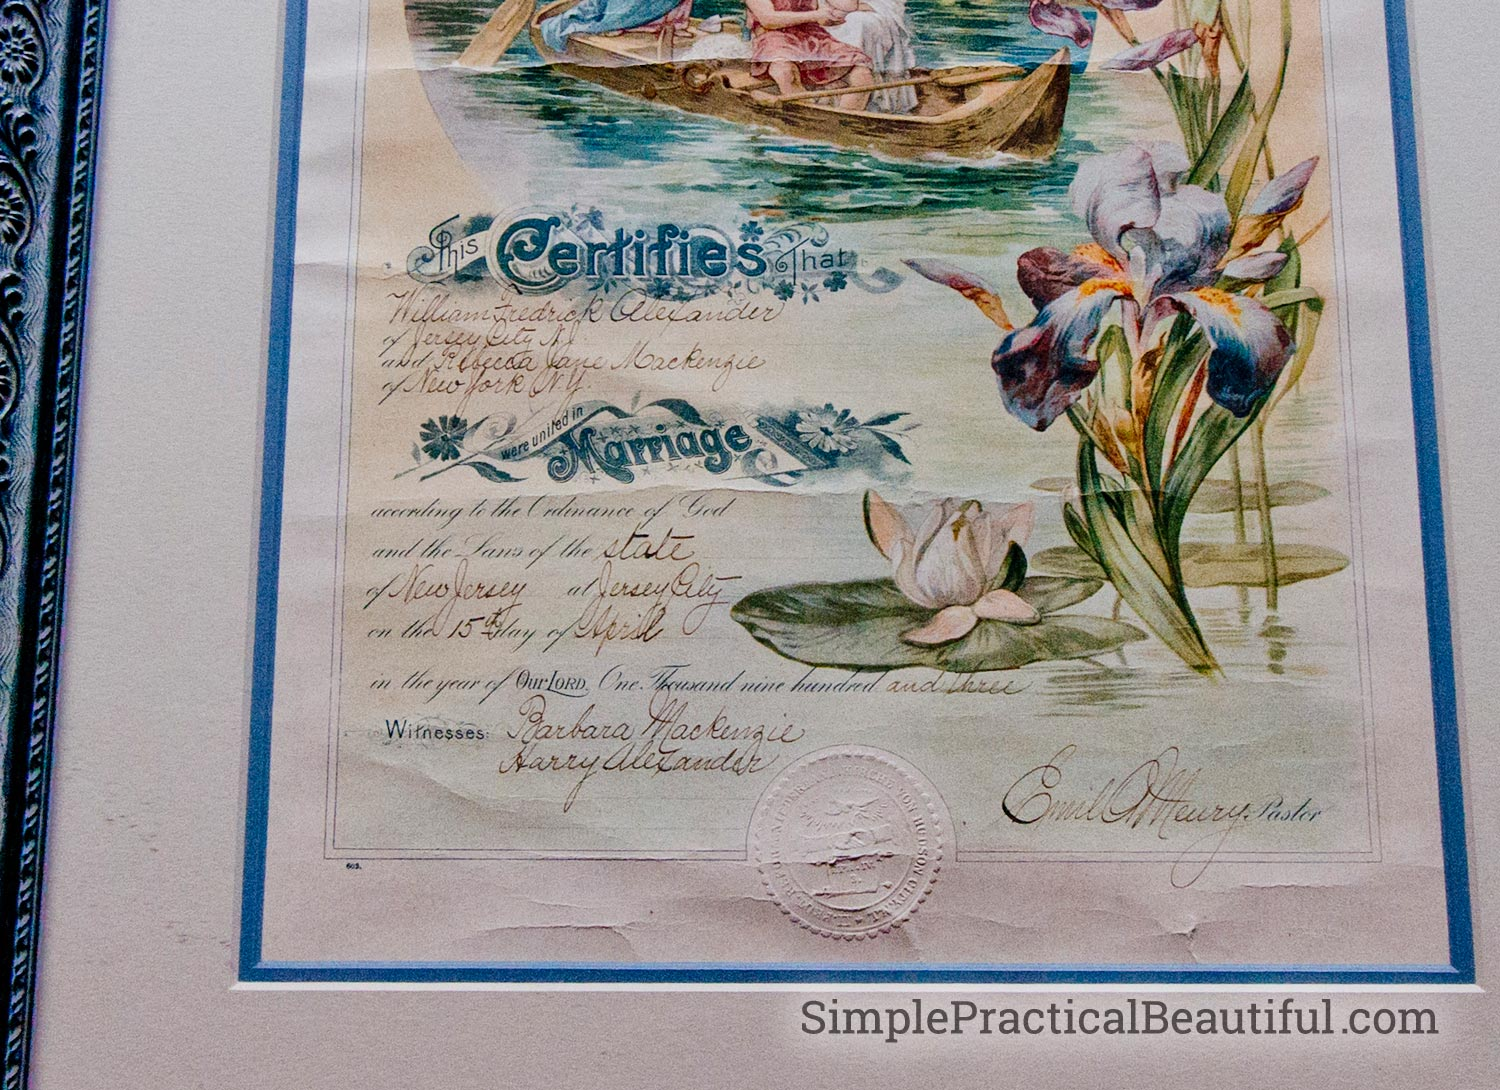 My grandmother's marriage certificate